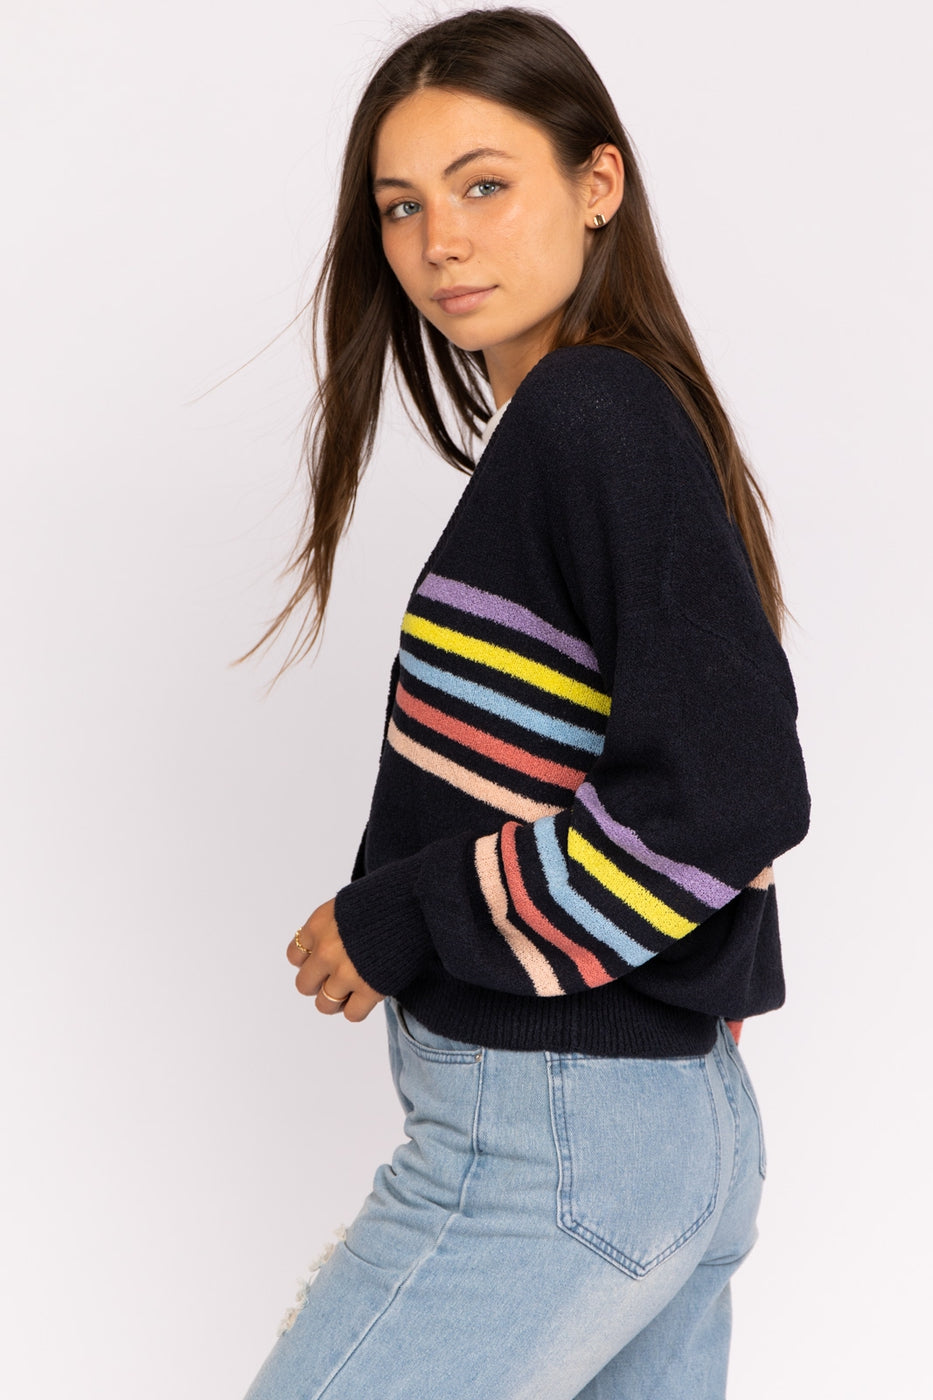 Long Sleeve Knit Cardigan With Stripes And Distressed Hem In Navy Siin Bees